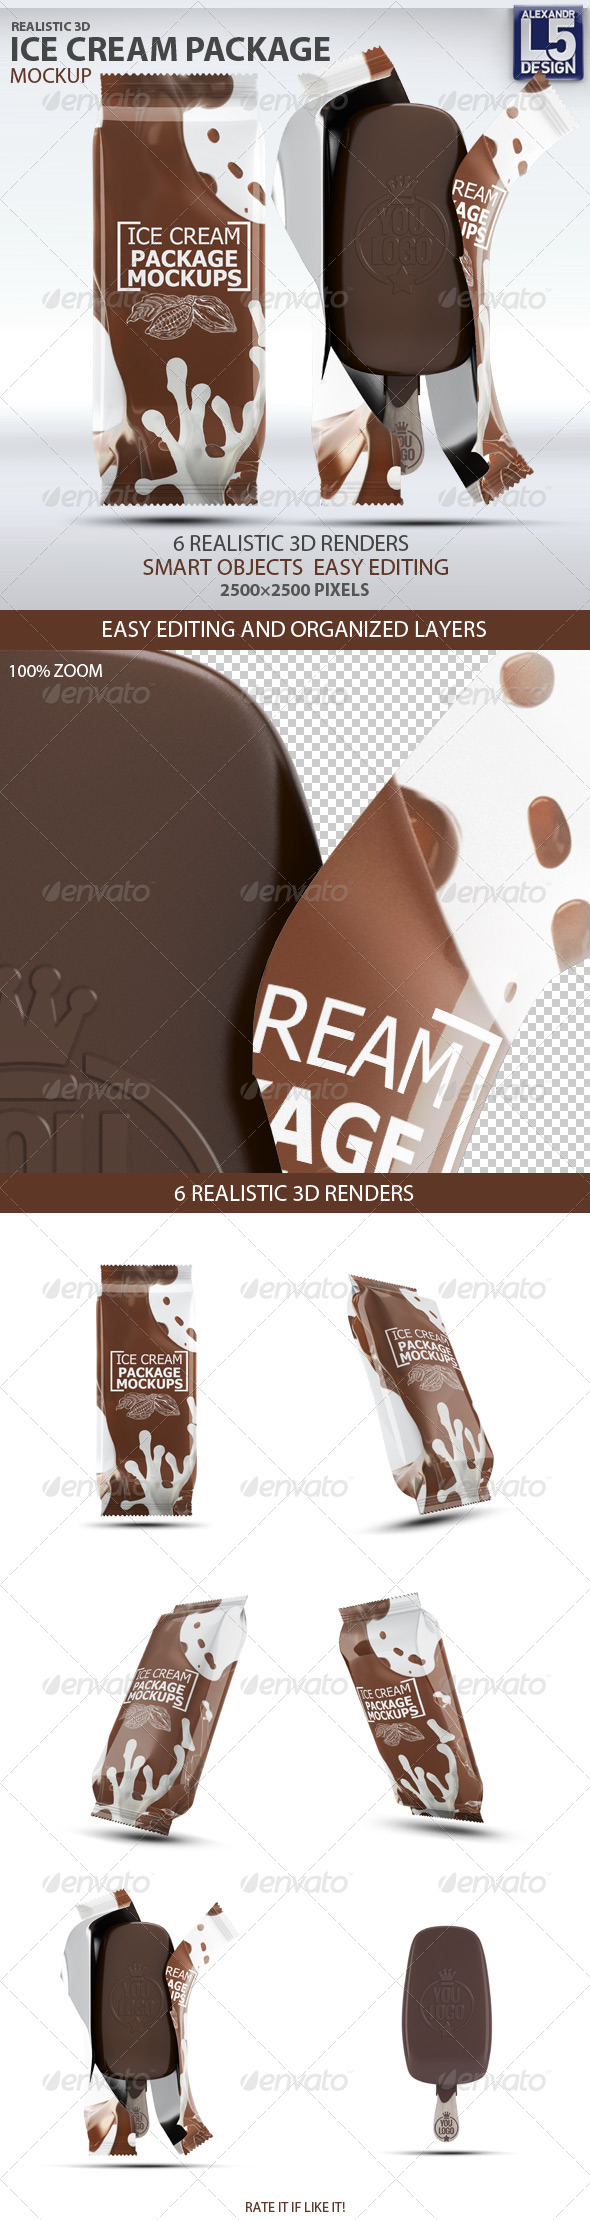 Ice Cream Package Mock-Up